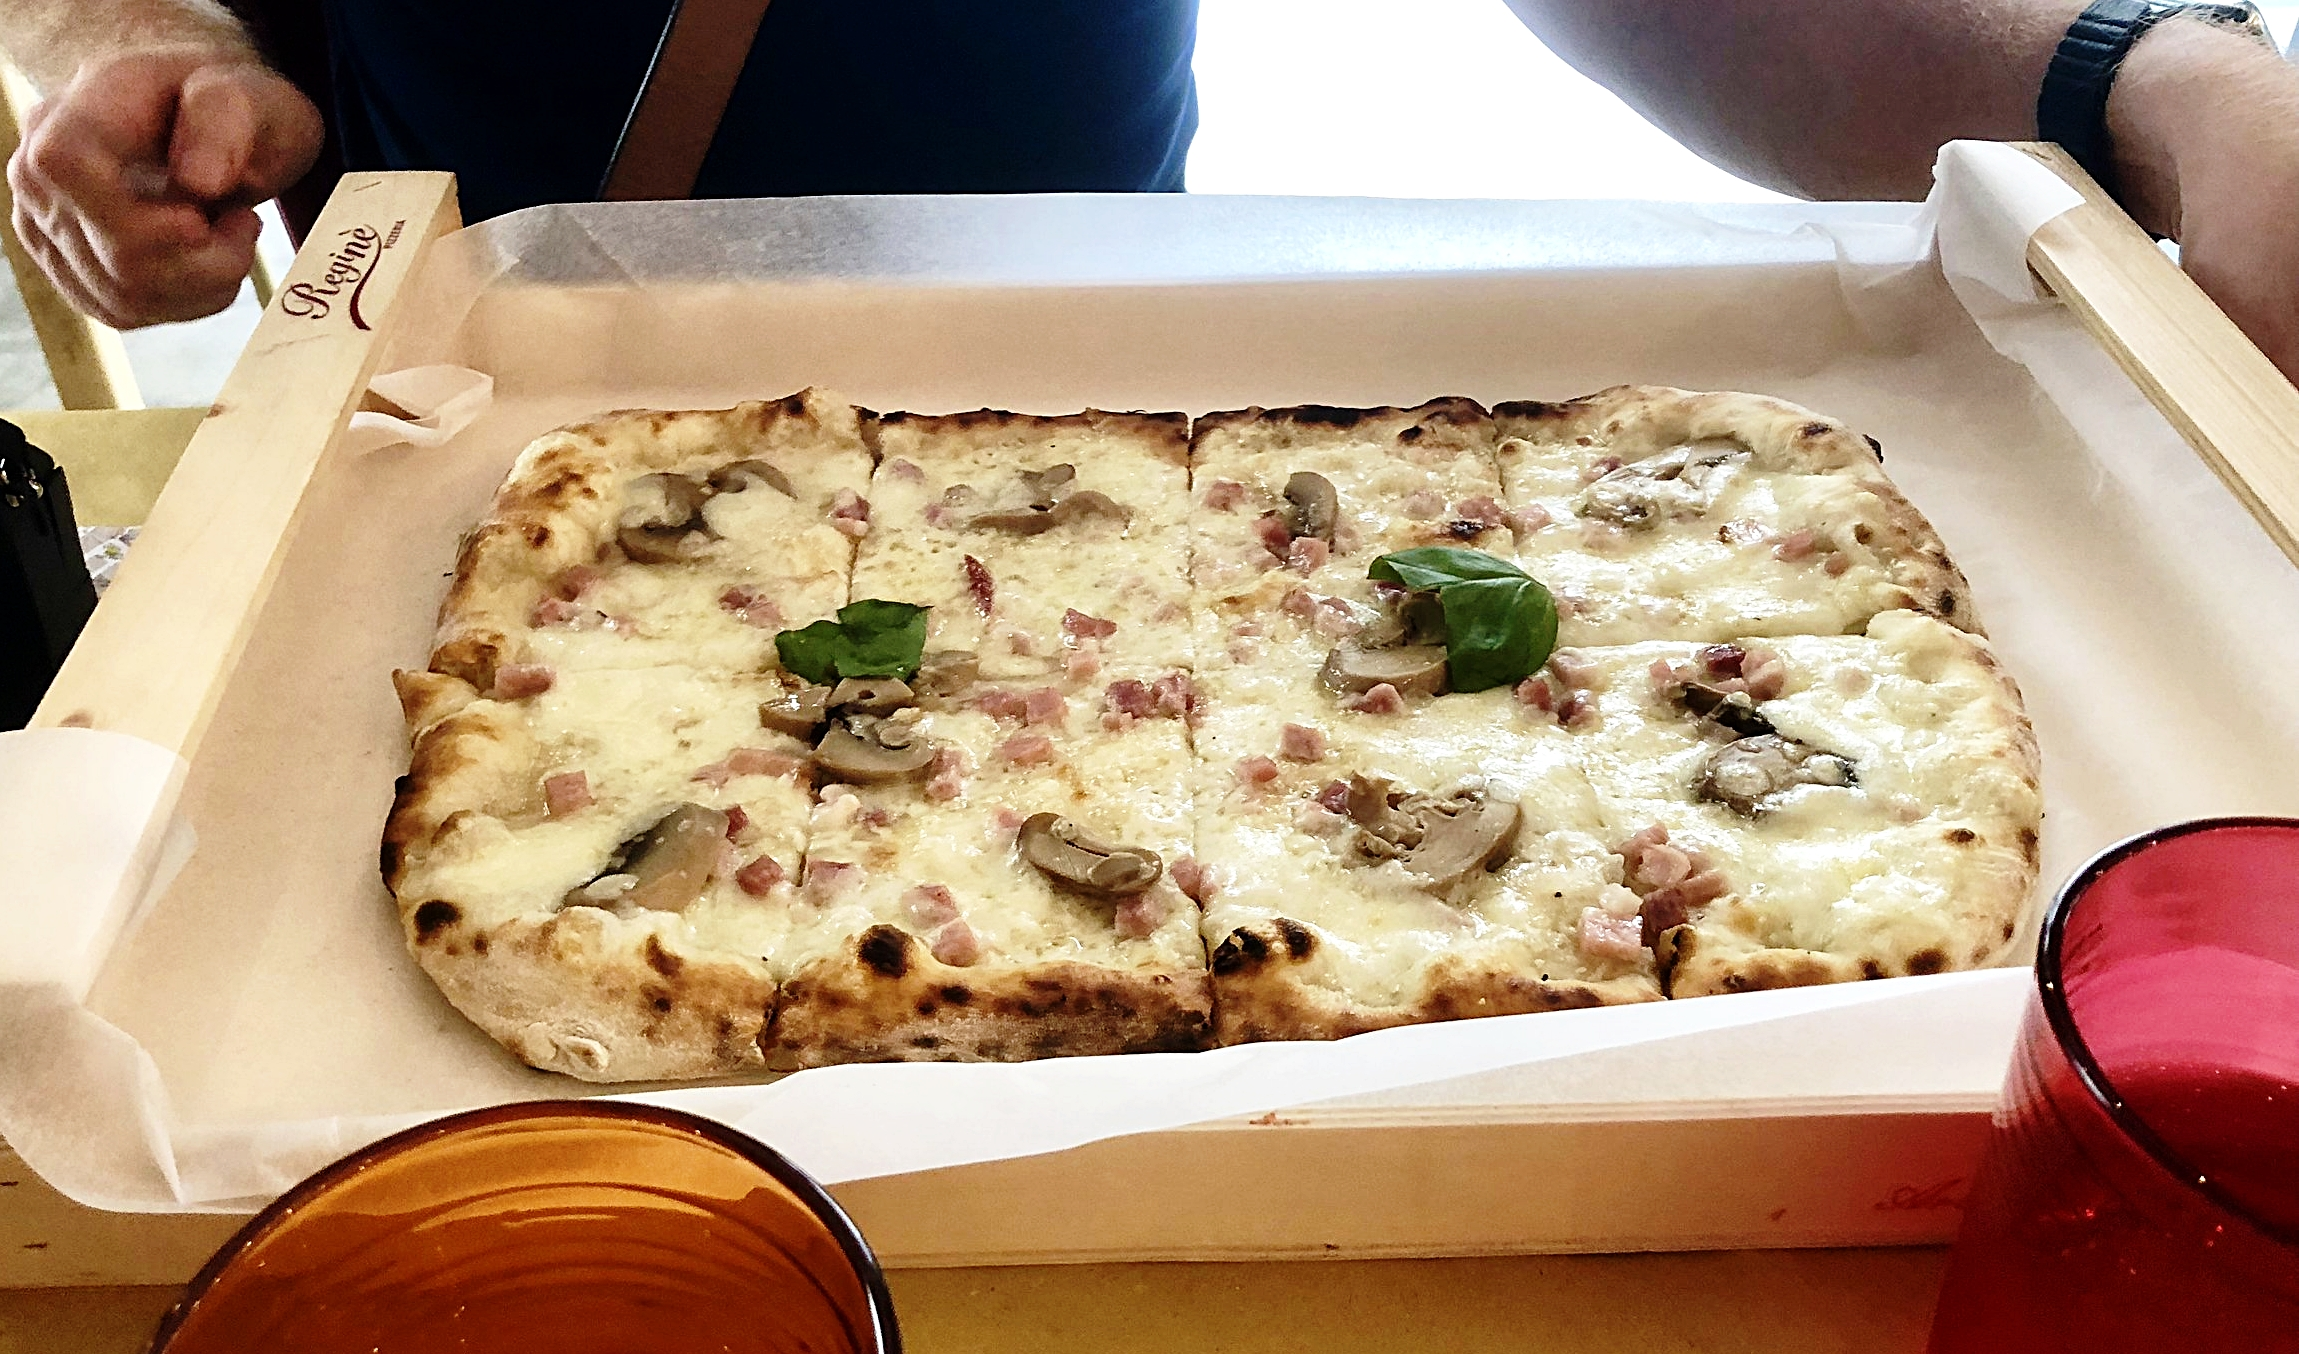 Authentic and delicious Italian pizza served in a wooden box!